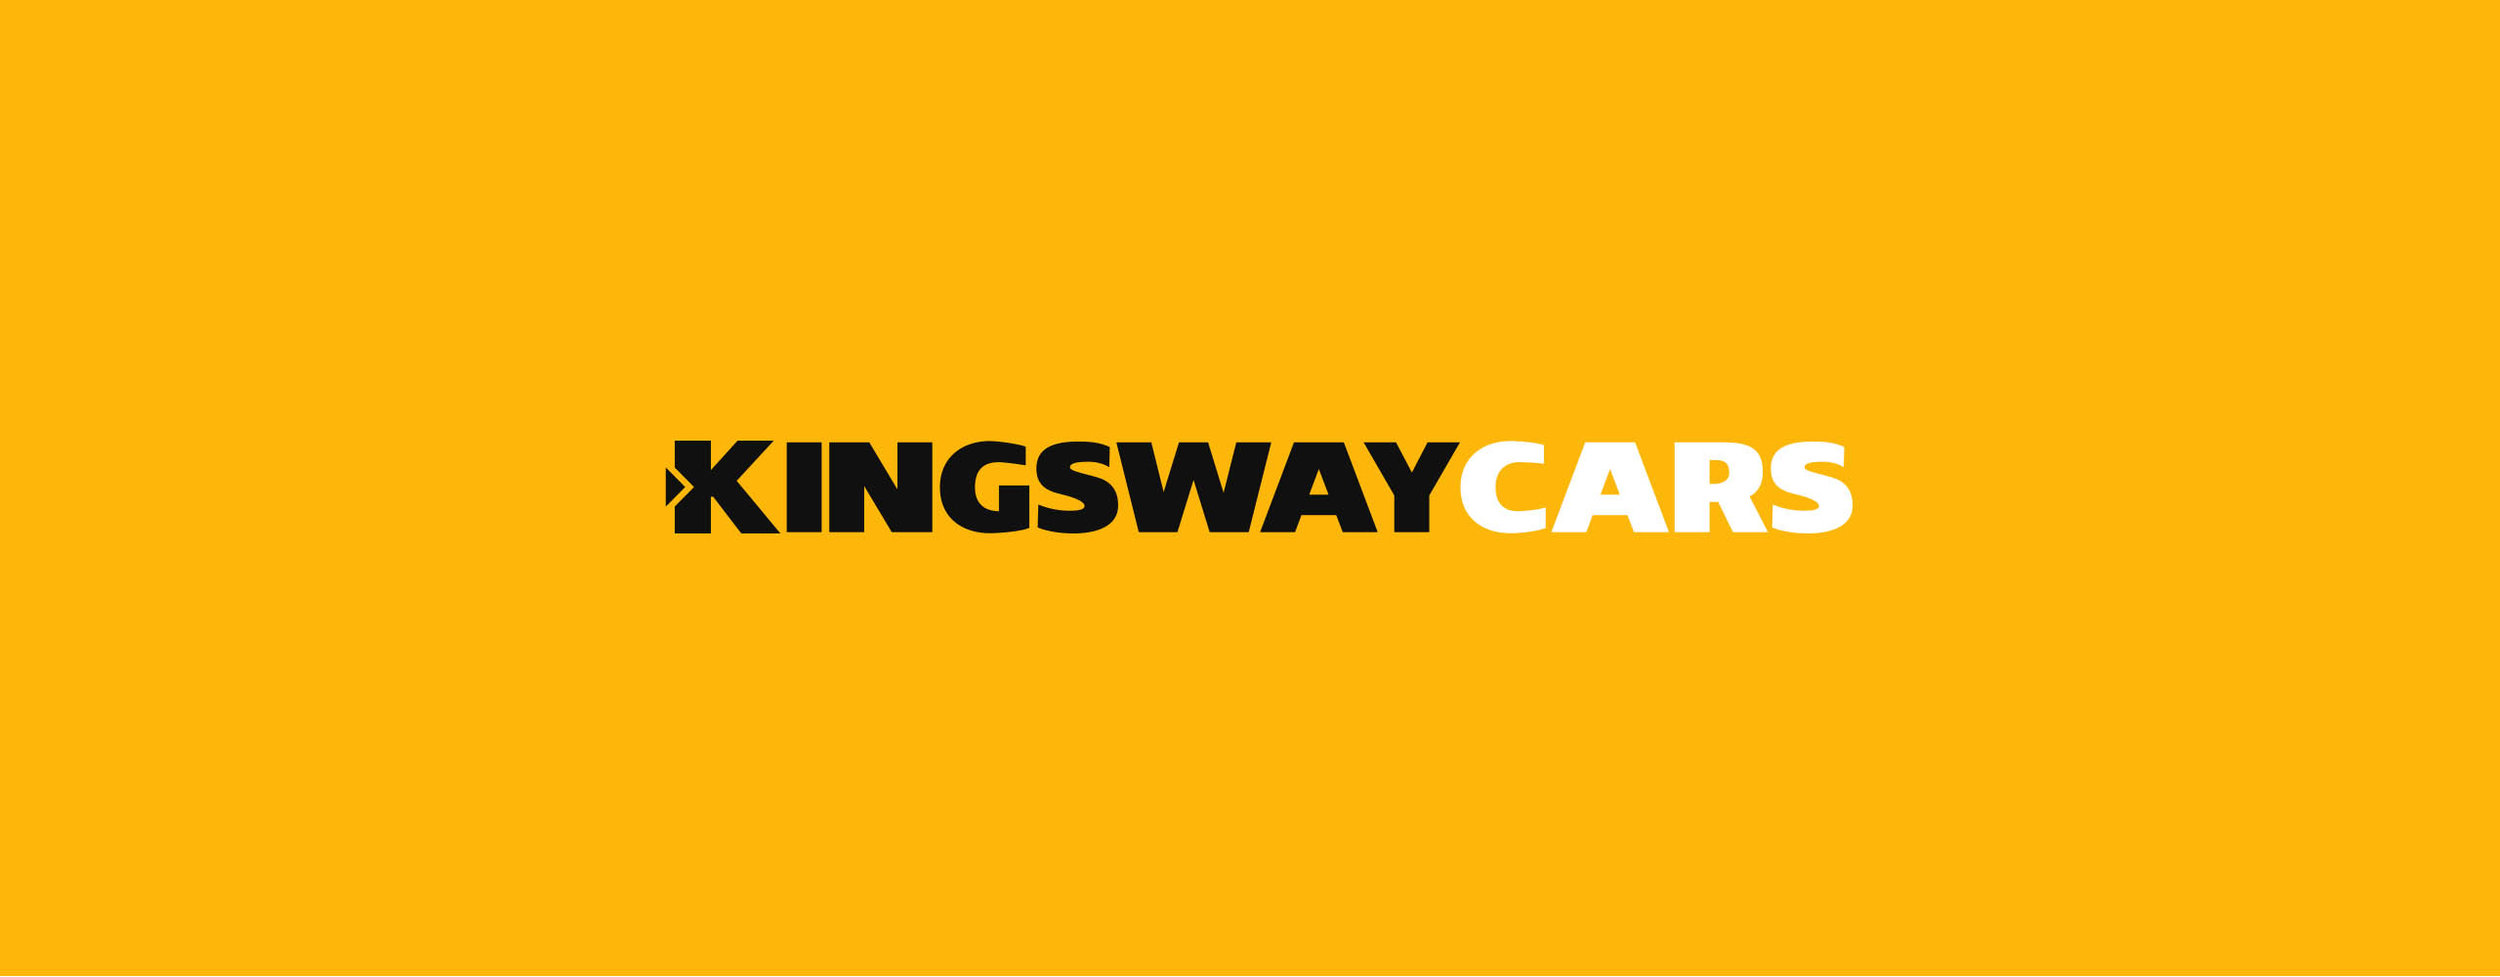 Kingsway Cars Logo on Yellow